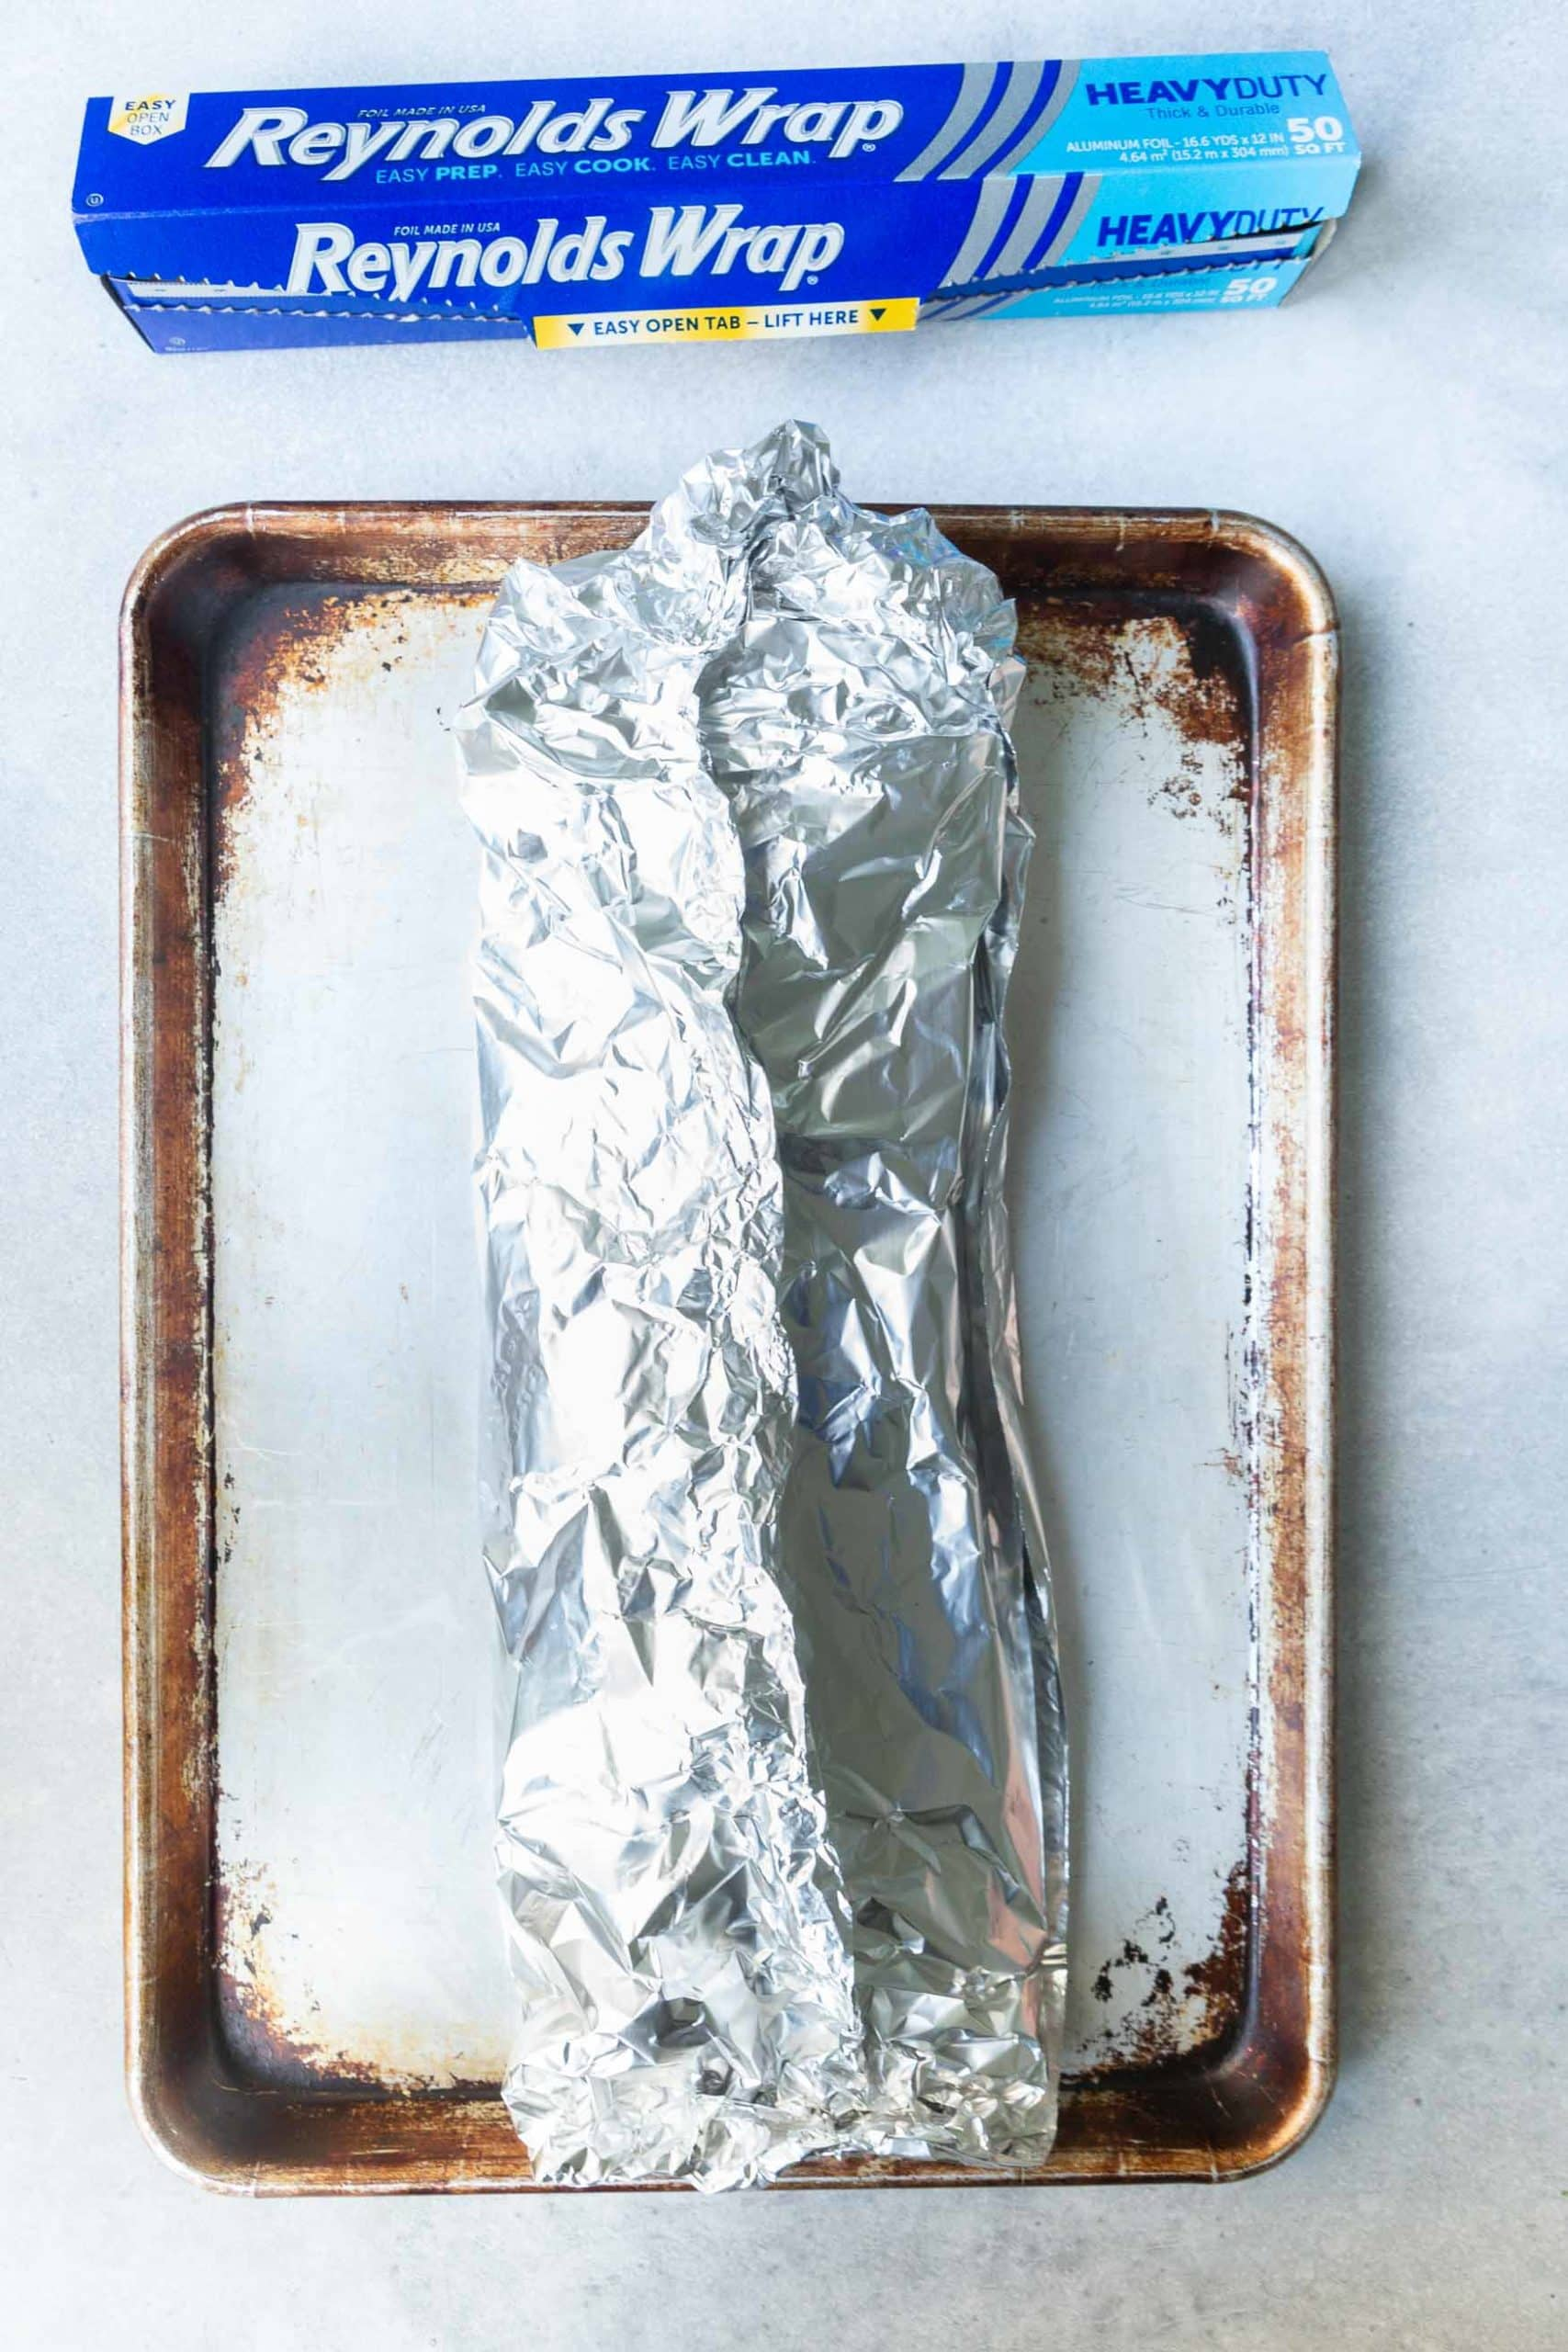 a photo of a baking sheet with a rack of ribs wrapped in foil on it.